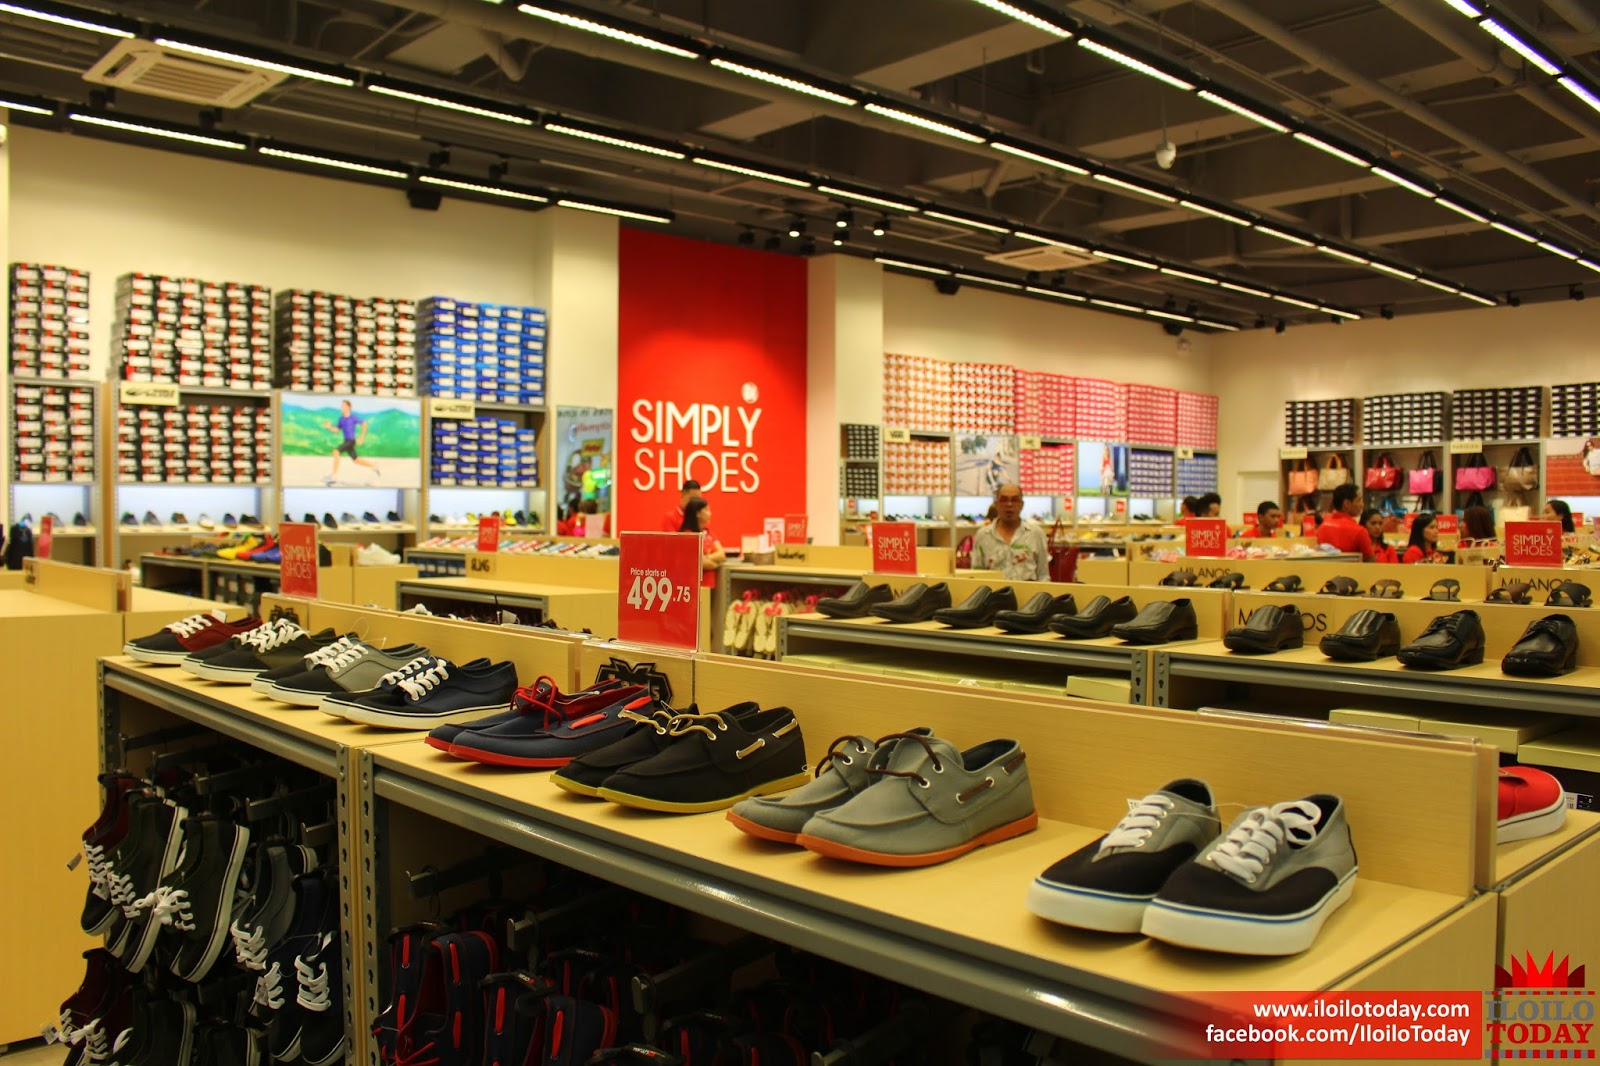 vans shoes store saudi arabia